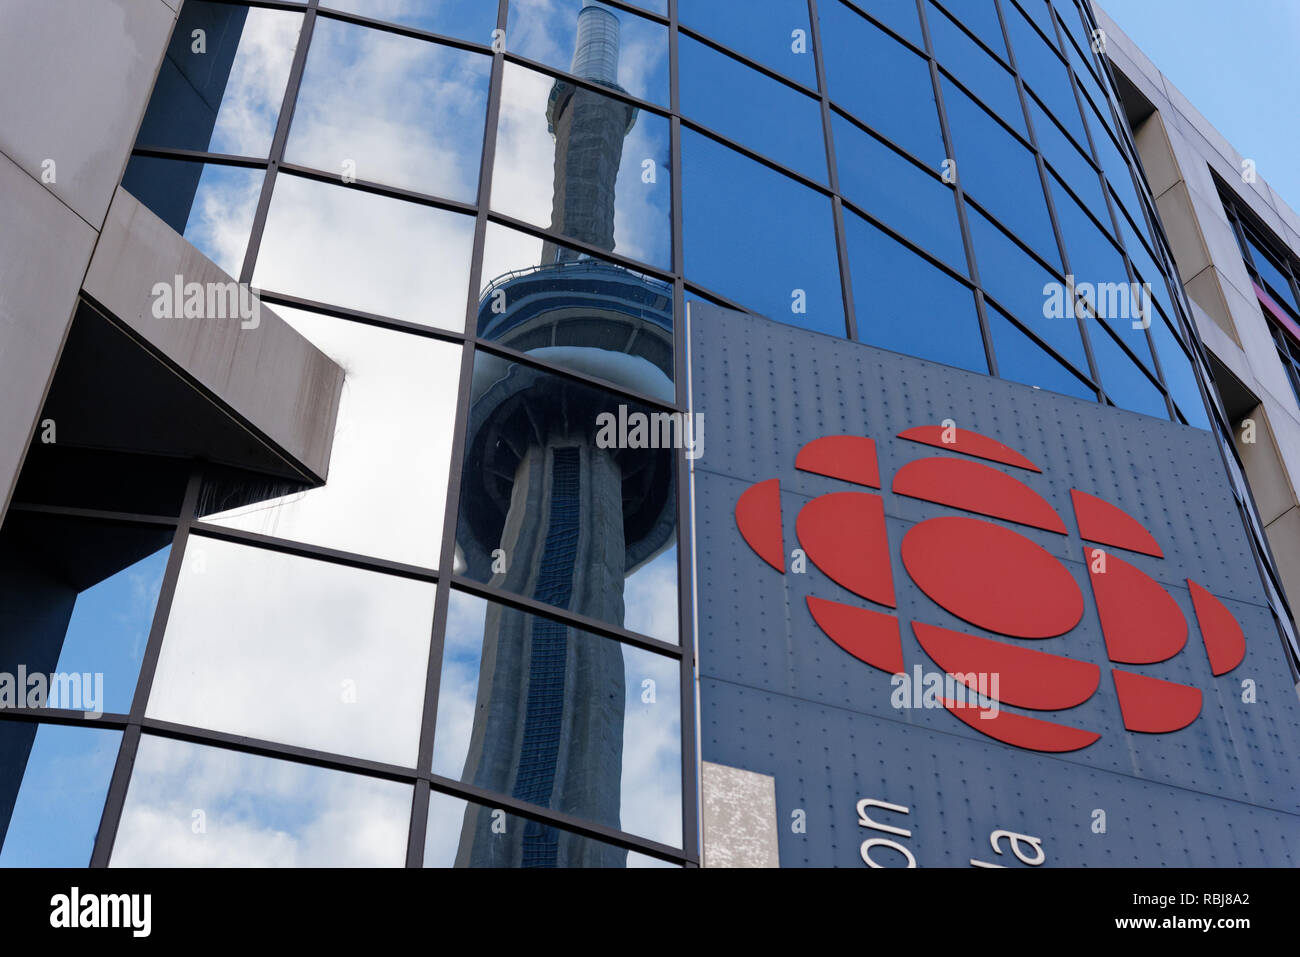 The CN Tower reflected in the windows of the Canadian Broadcasting Corporation (CBC) building. - Stock Image